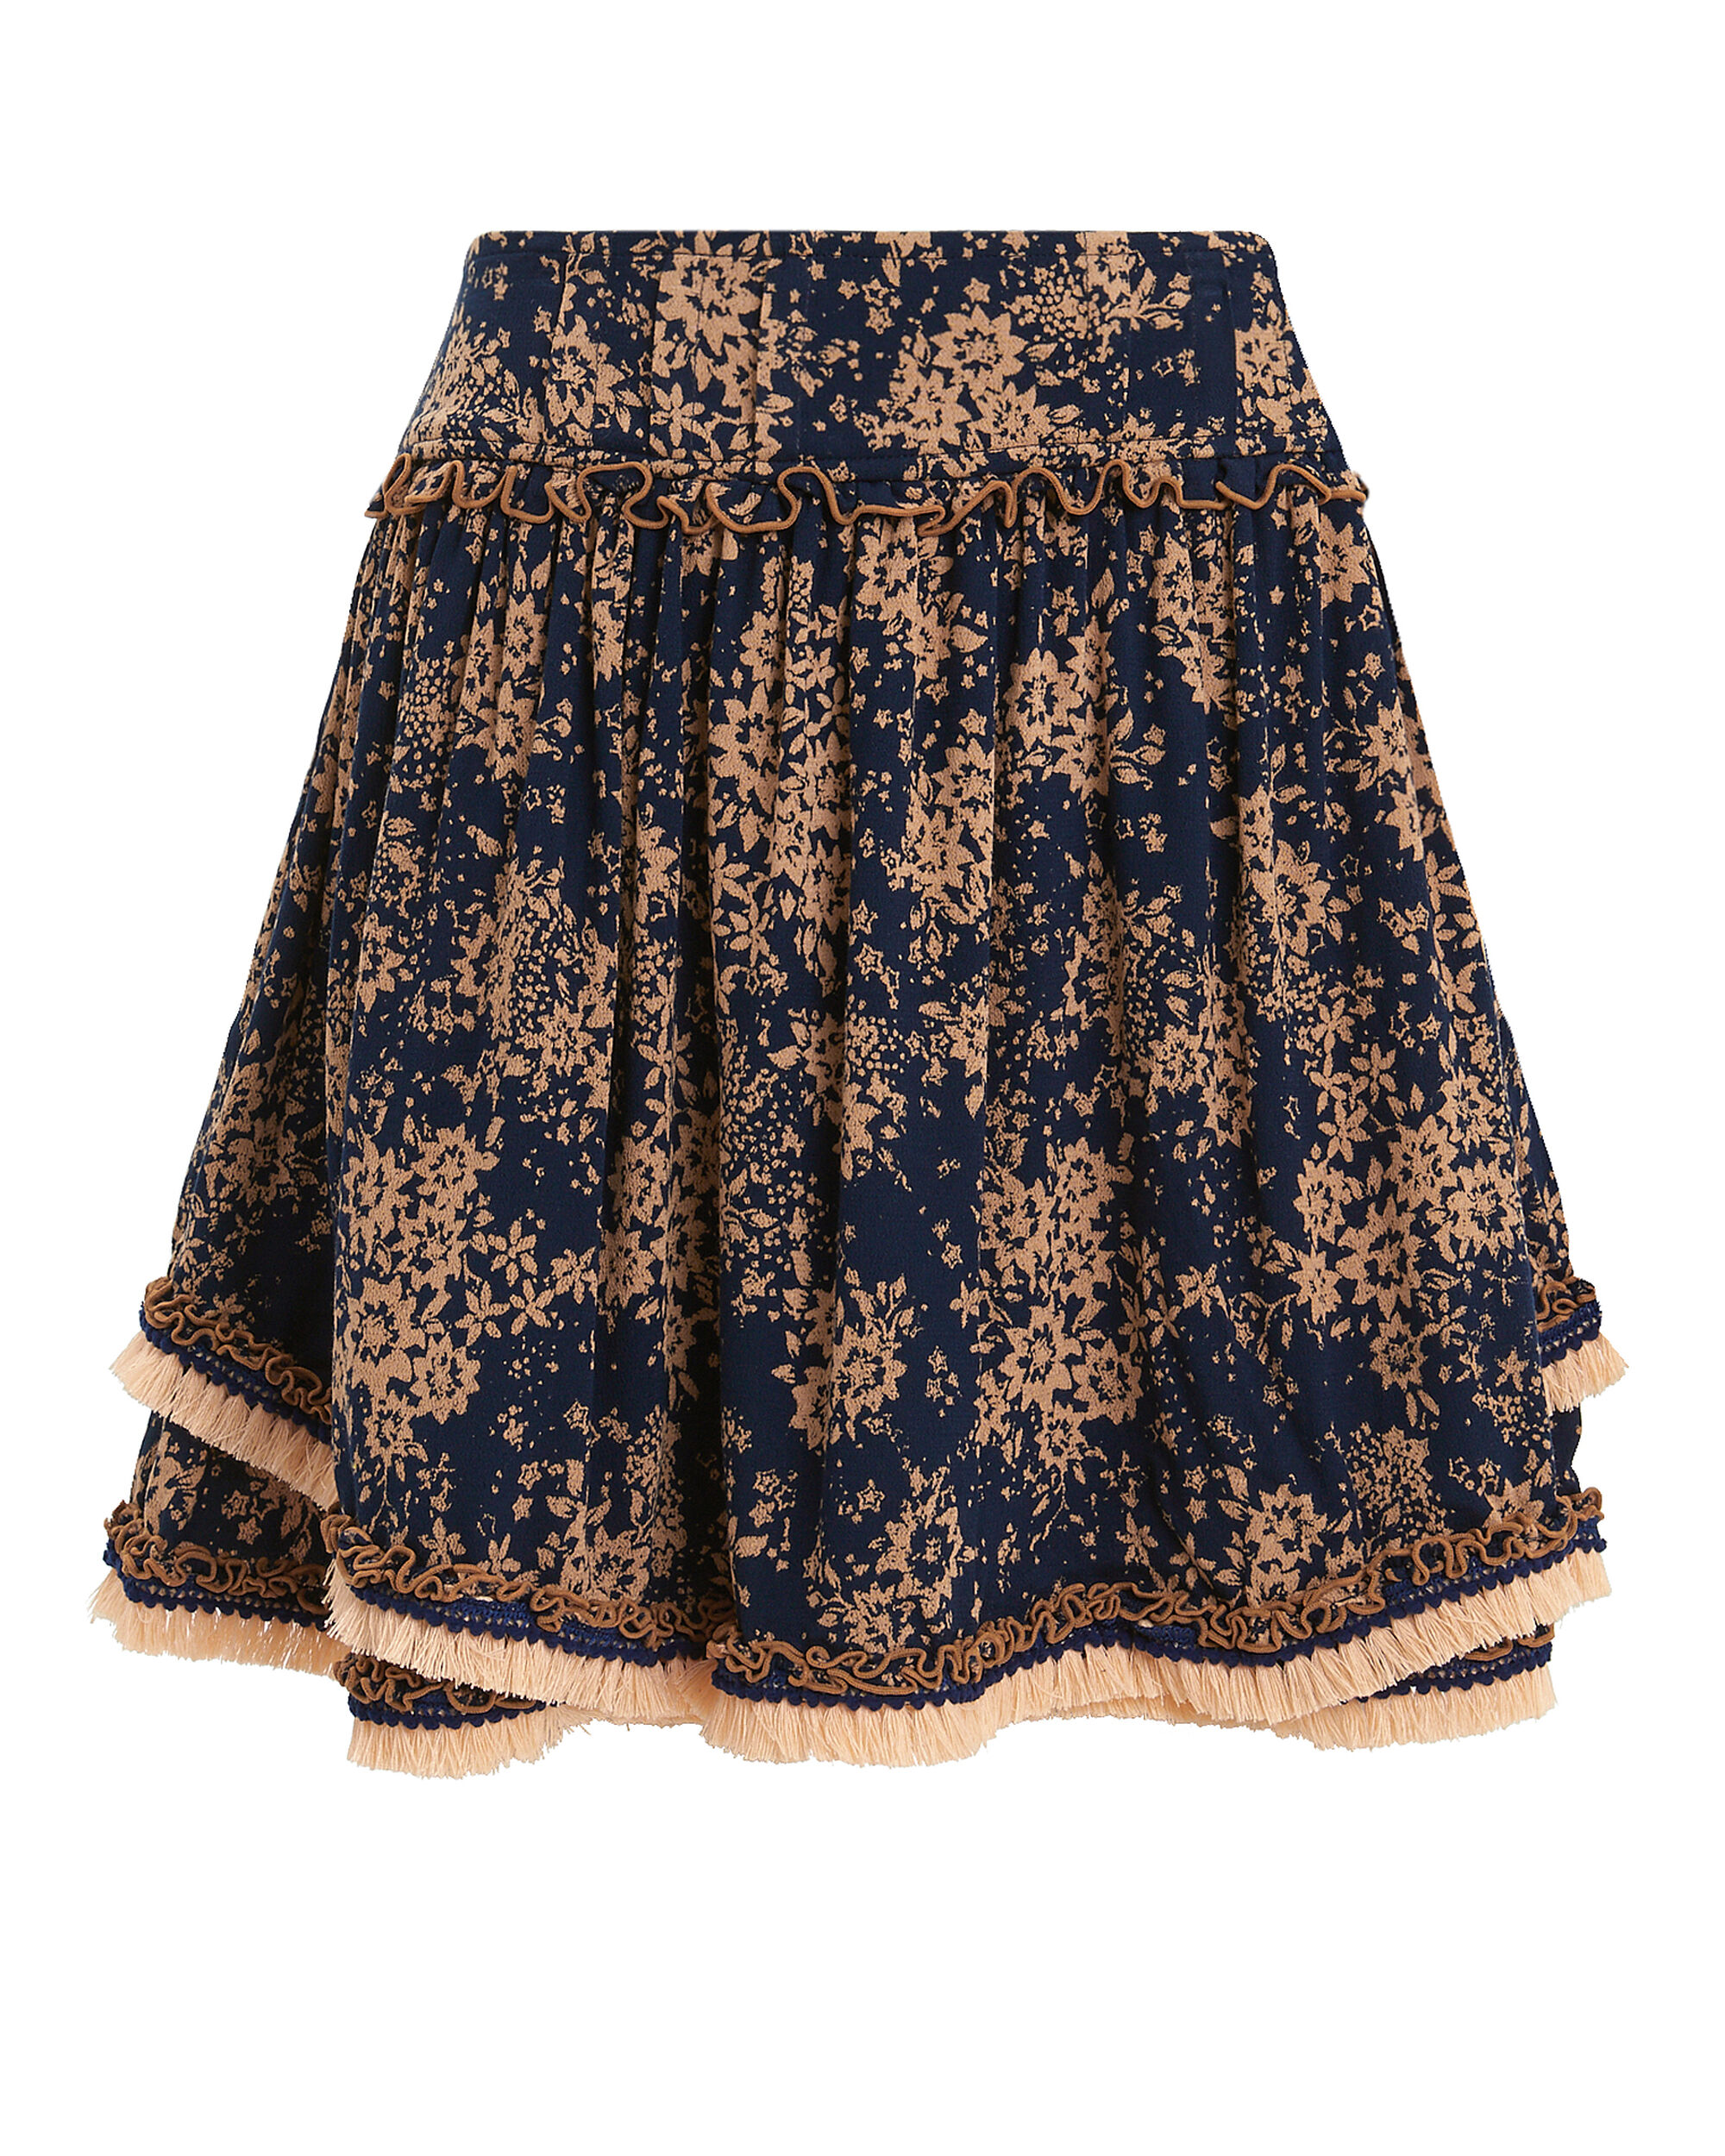 Heidi Wrap Mini Skirt, NAVY/PEACH FLORAL, hi-res